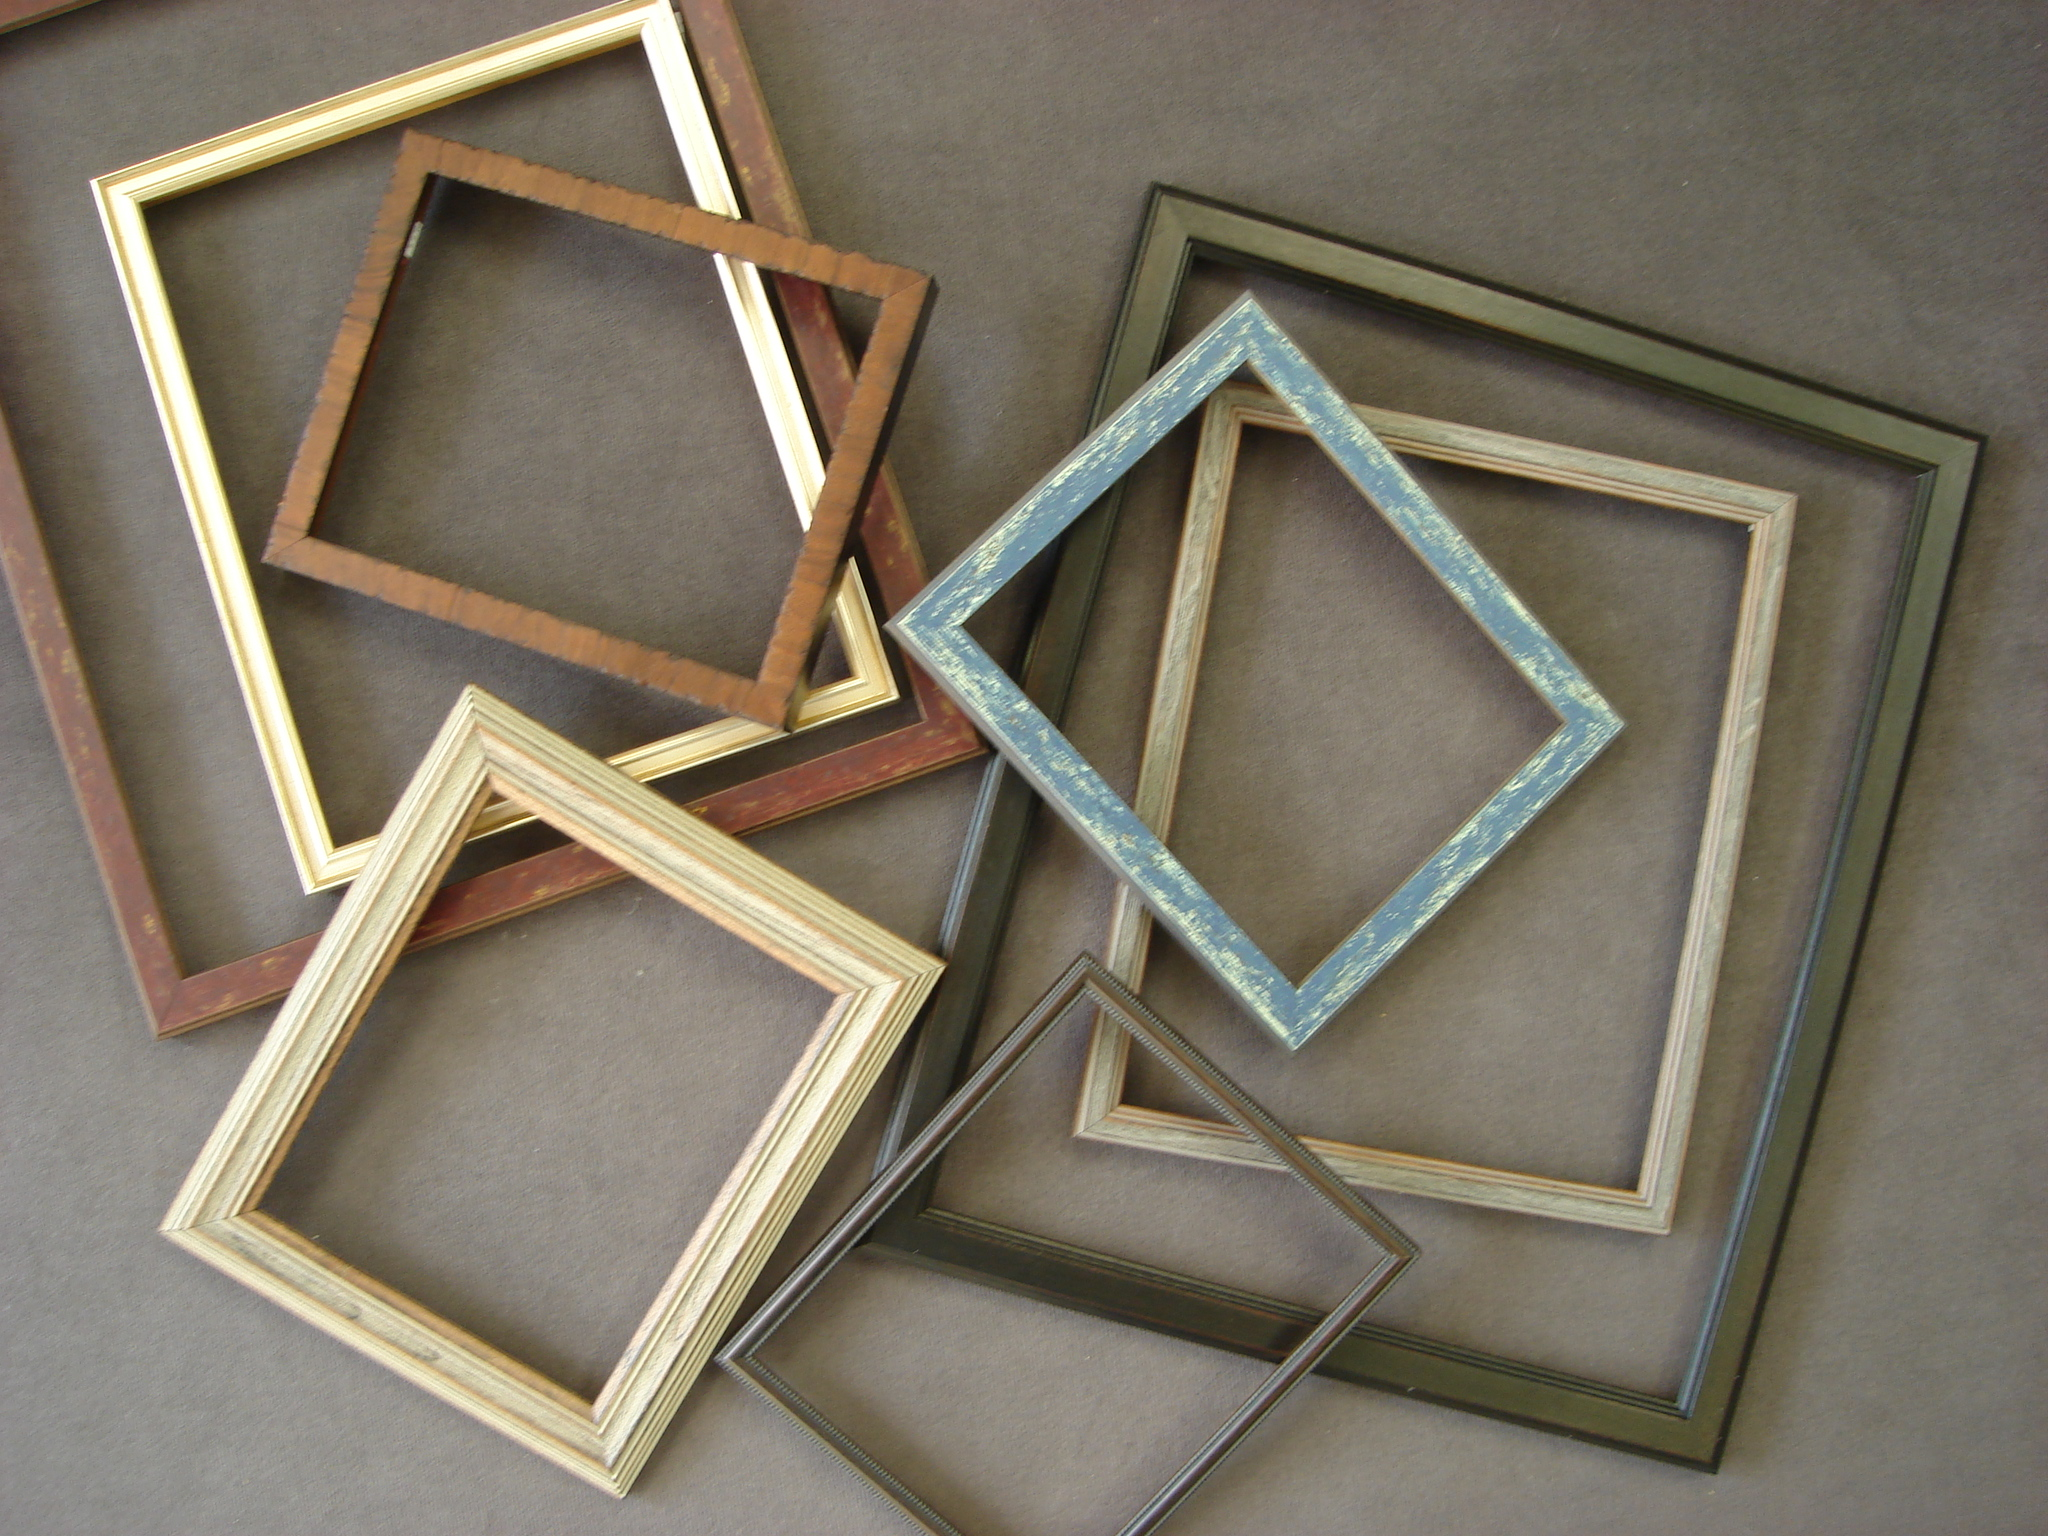 Picture framing art connection in coos bay we build our own ready made frames from fine custom mouldings add one of our pre cut mats and youve got a custom look for a ready made price jeuxipadfo Choice Image